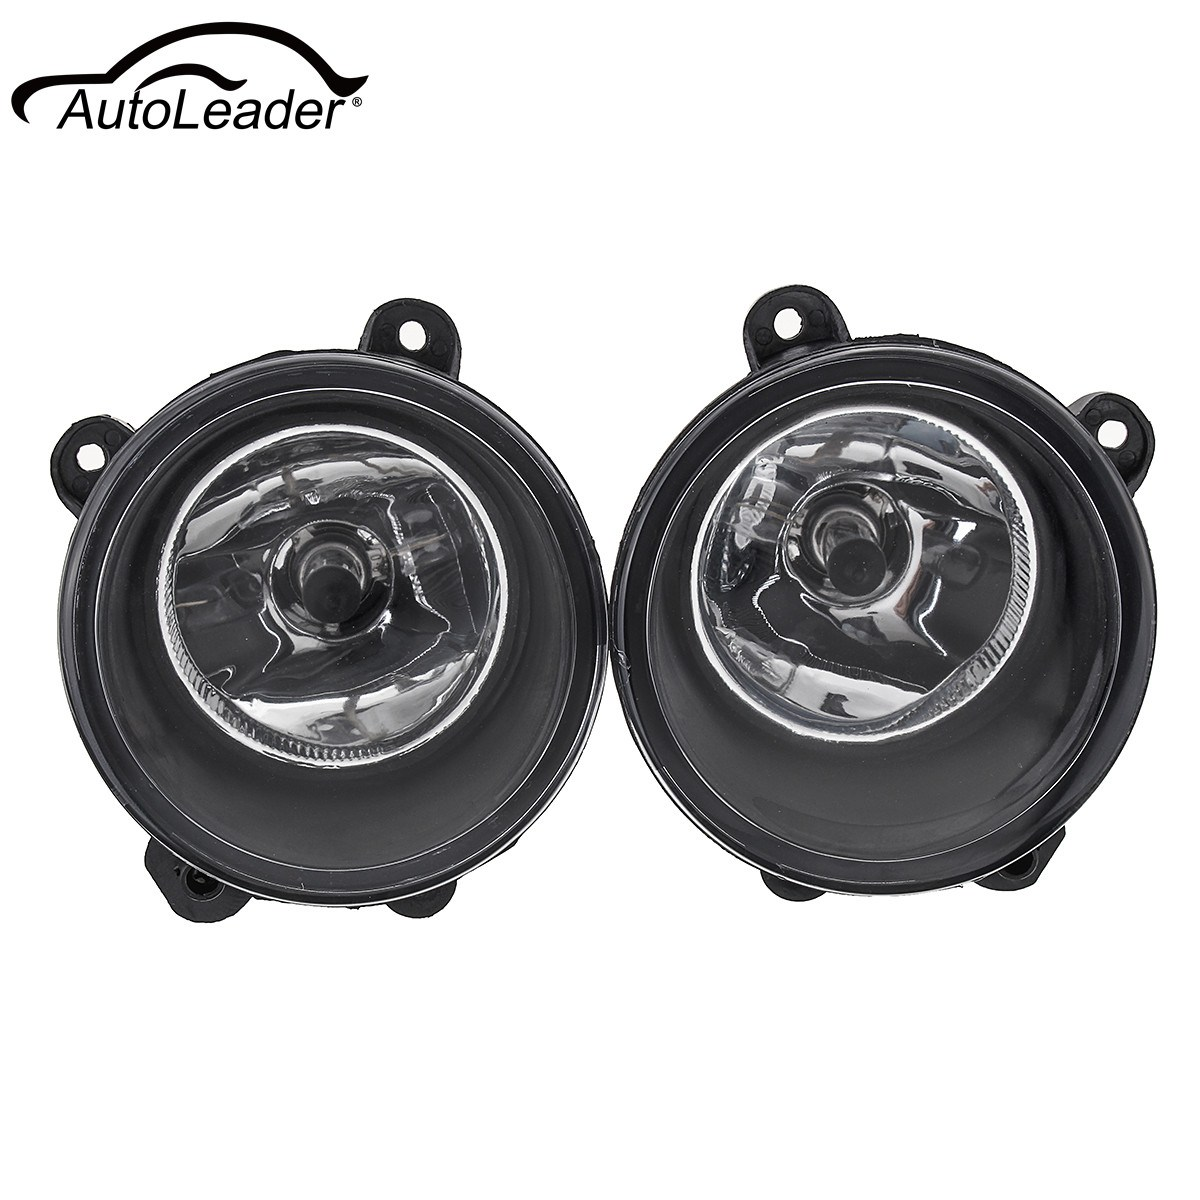 1Pair Car Fog Lights Clear Lamp H11 Bulbs Front Right+Left Fog Lamp For Land Rover Discovery 3 X2 2003-2009 1 pcs left right fog lamp with bulbs front bumper driving fog light for suzuki alto 2009 2017